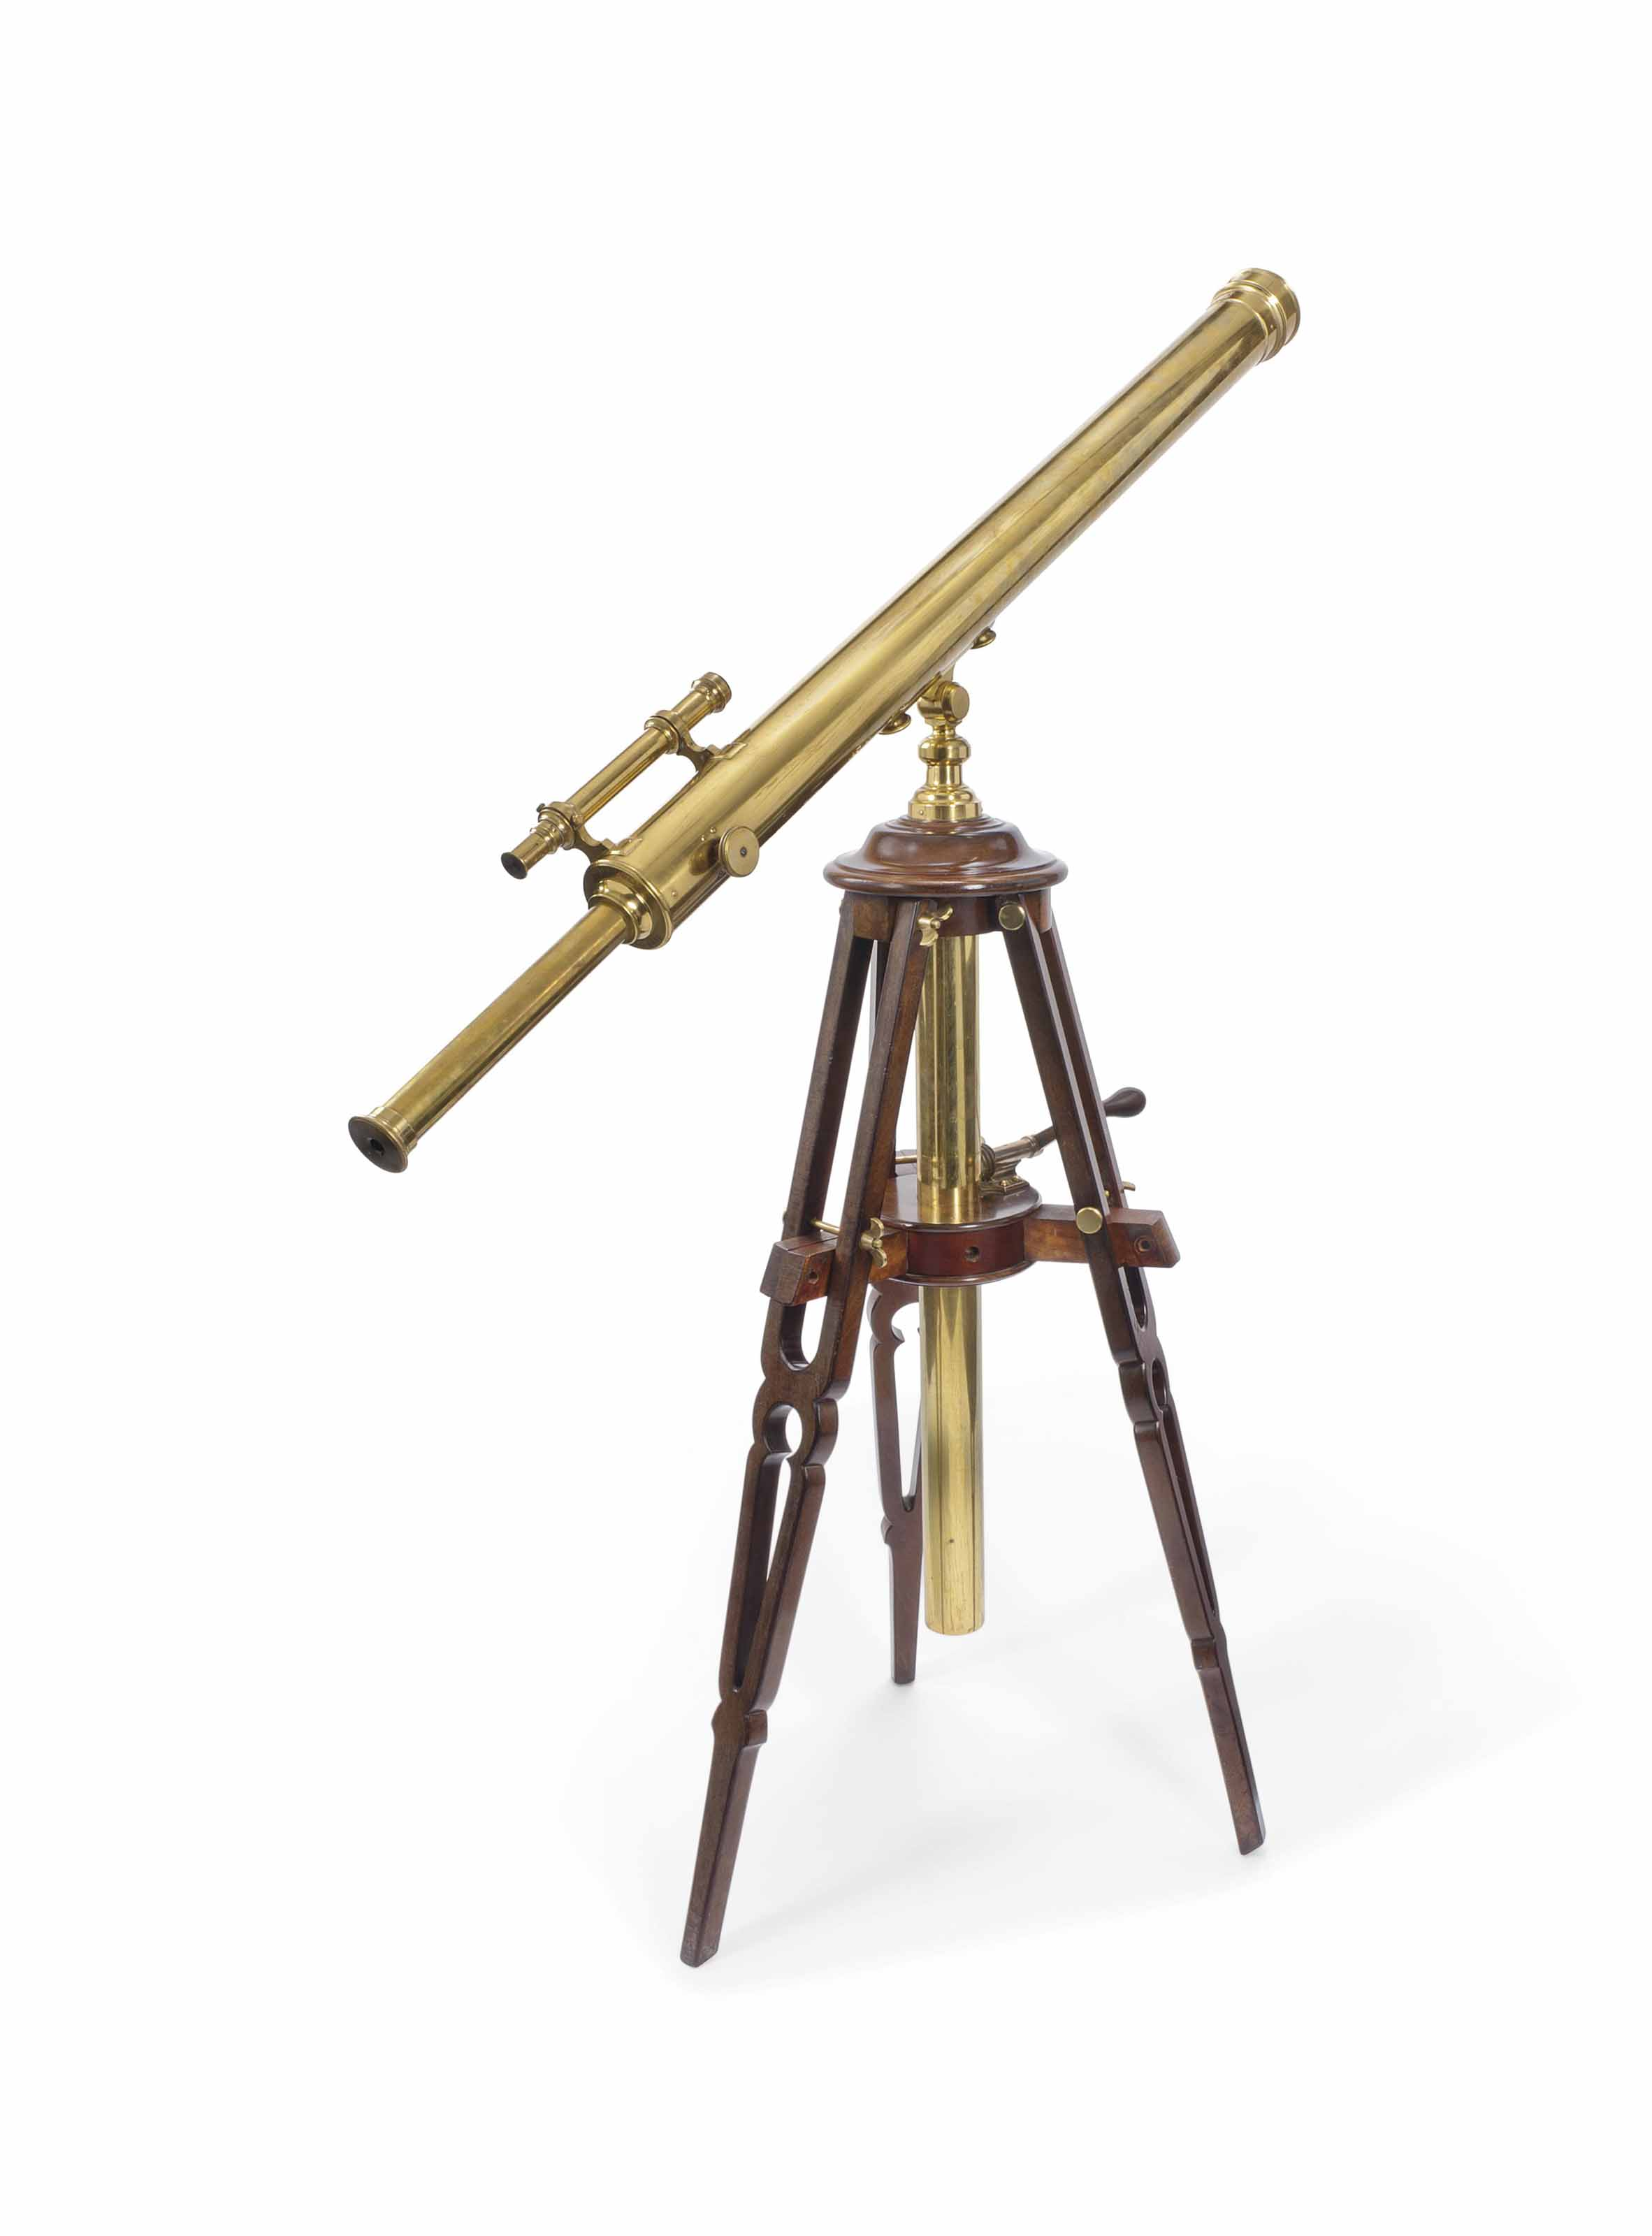 A 3-INCH REFRACTING TELESCOPE